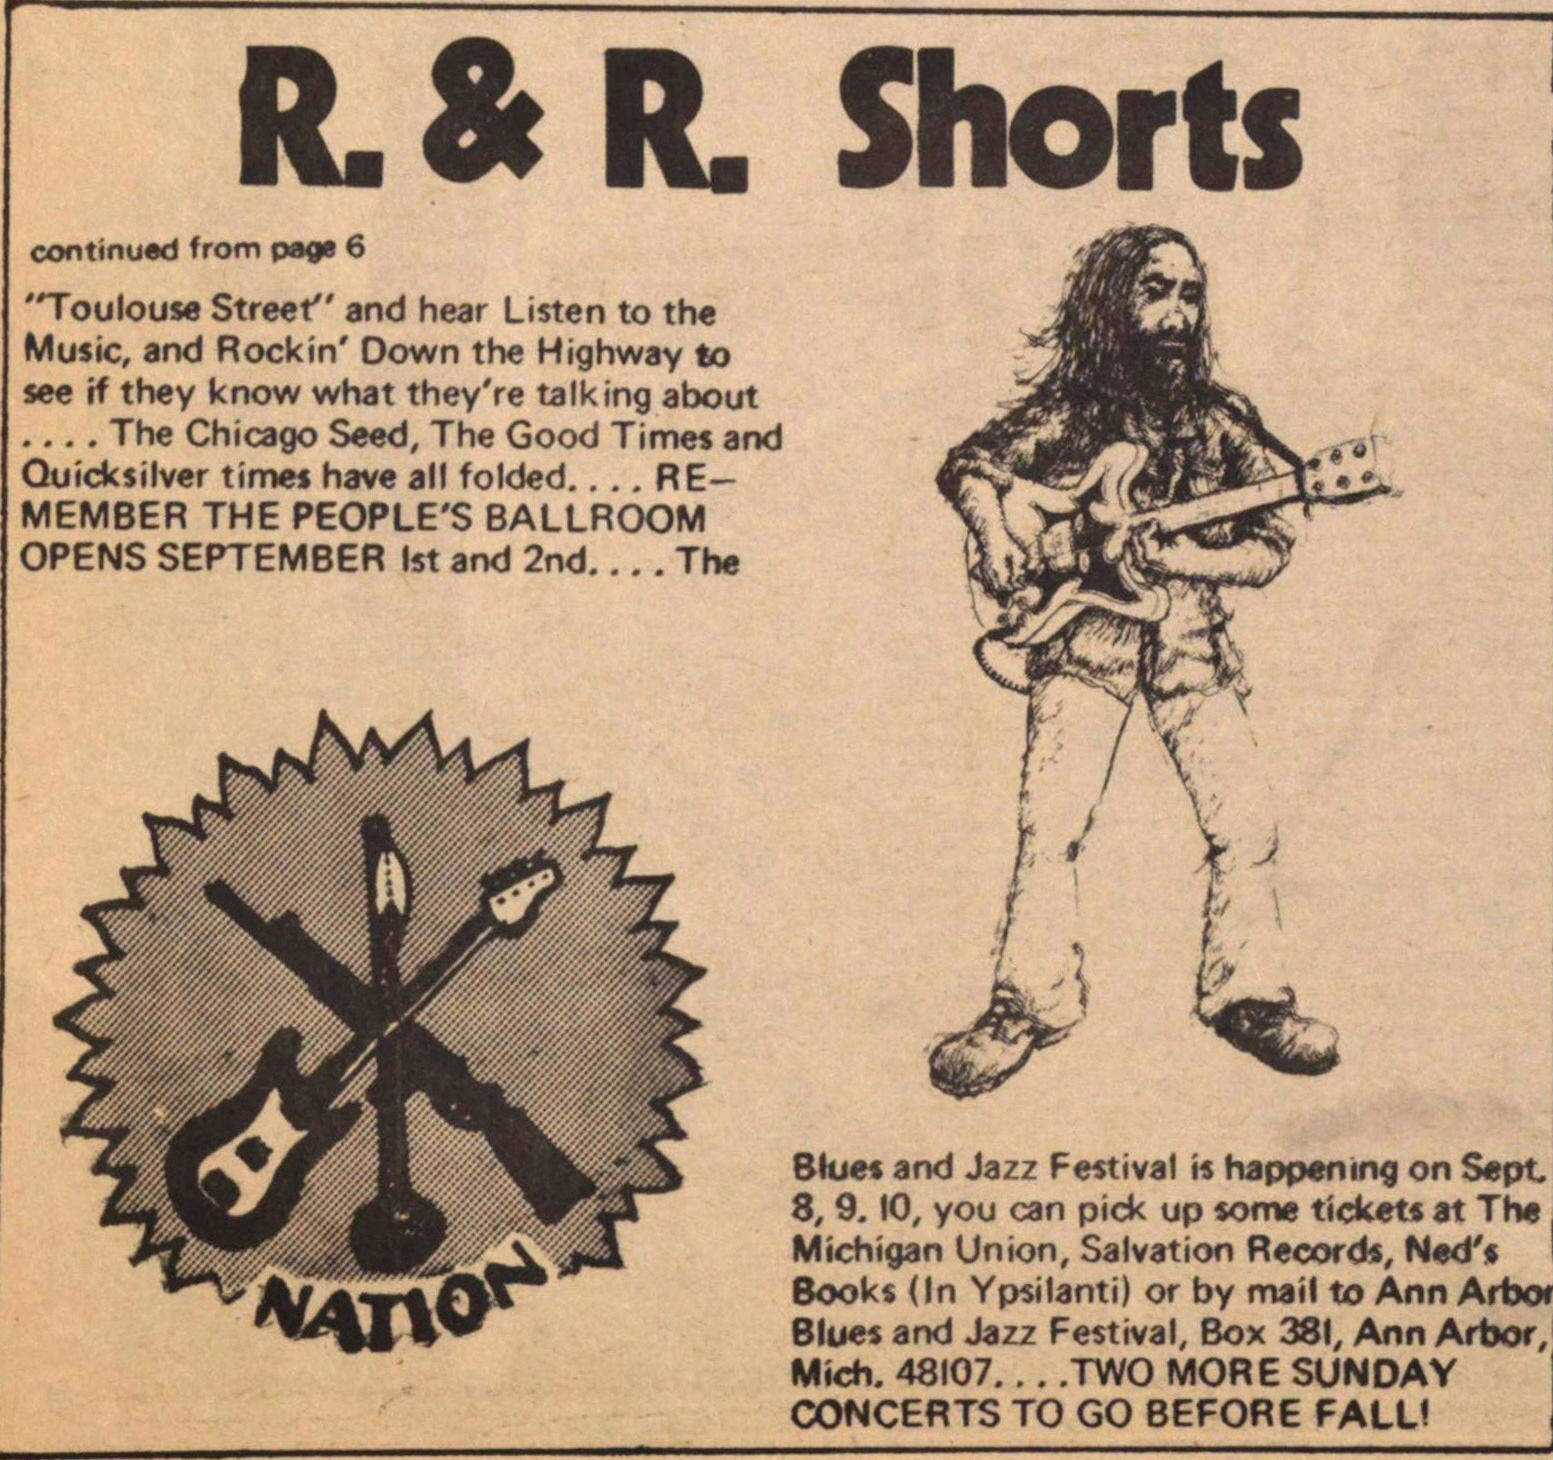 Rock & Roll Shorts image